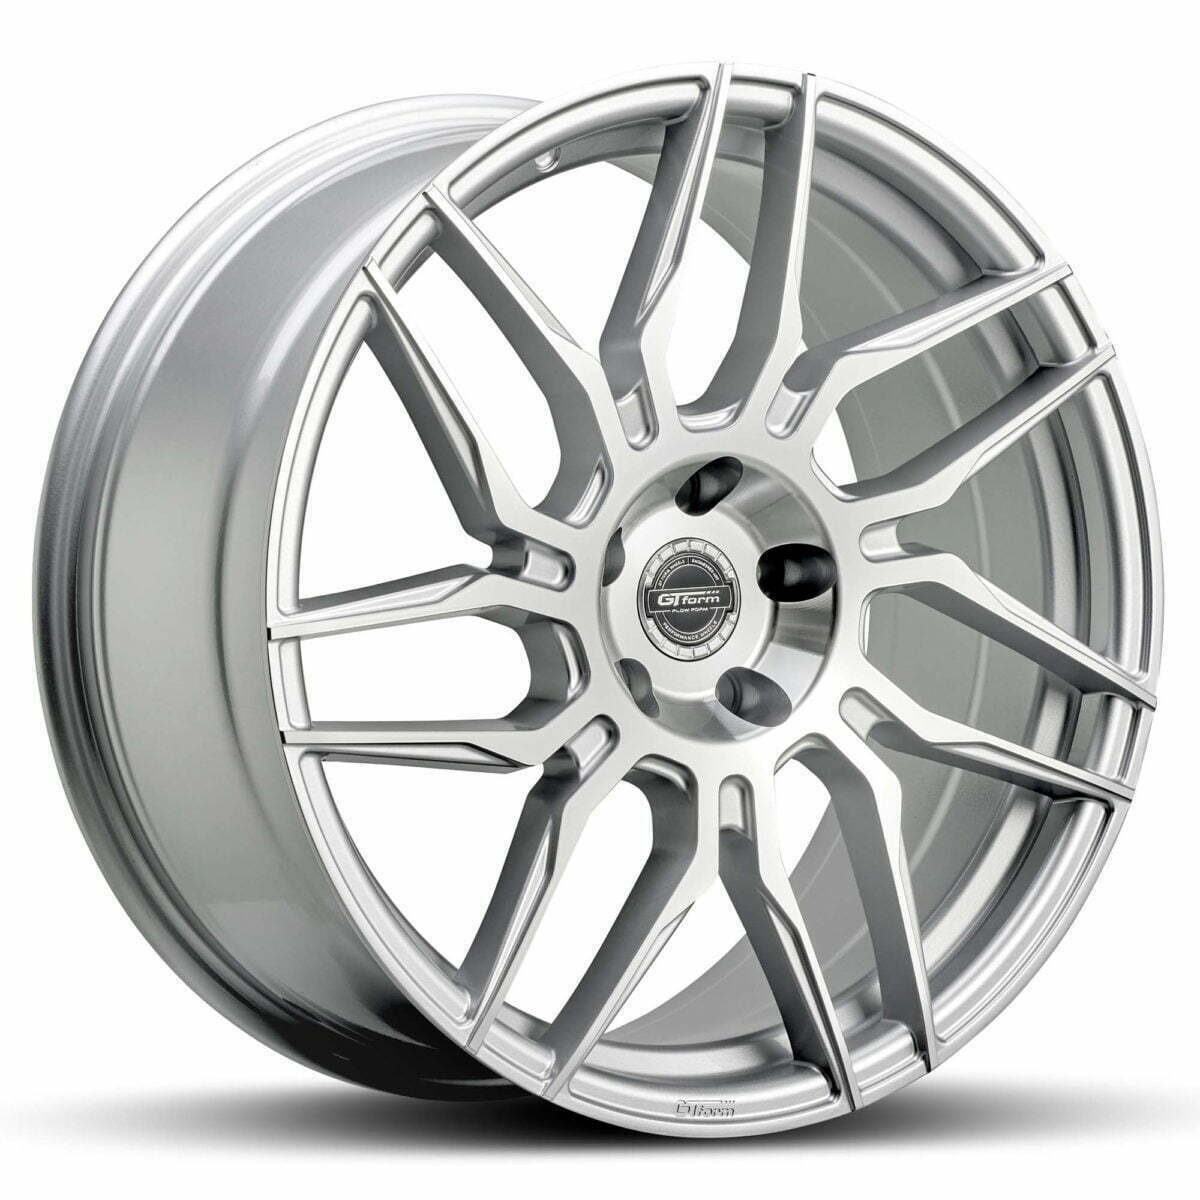 GT form Tycoon Silver Machined Face Wheel Rim Performance wheels